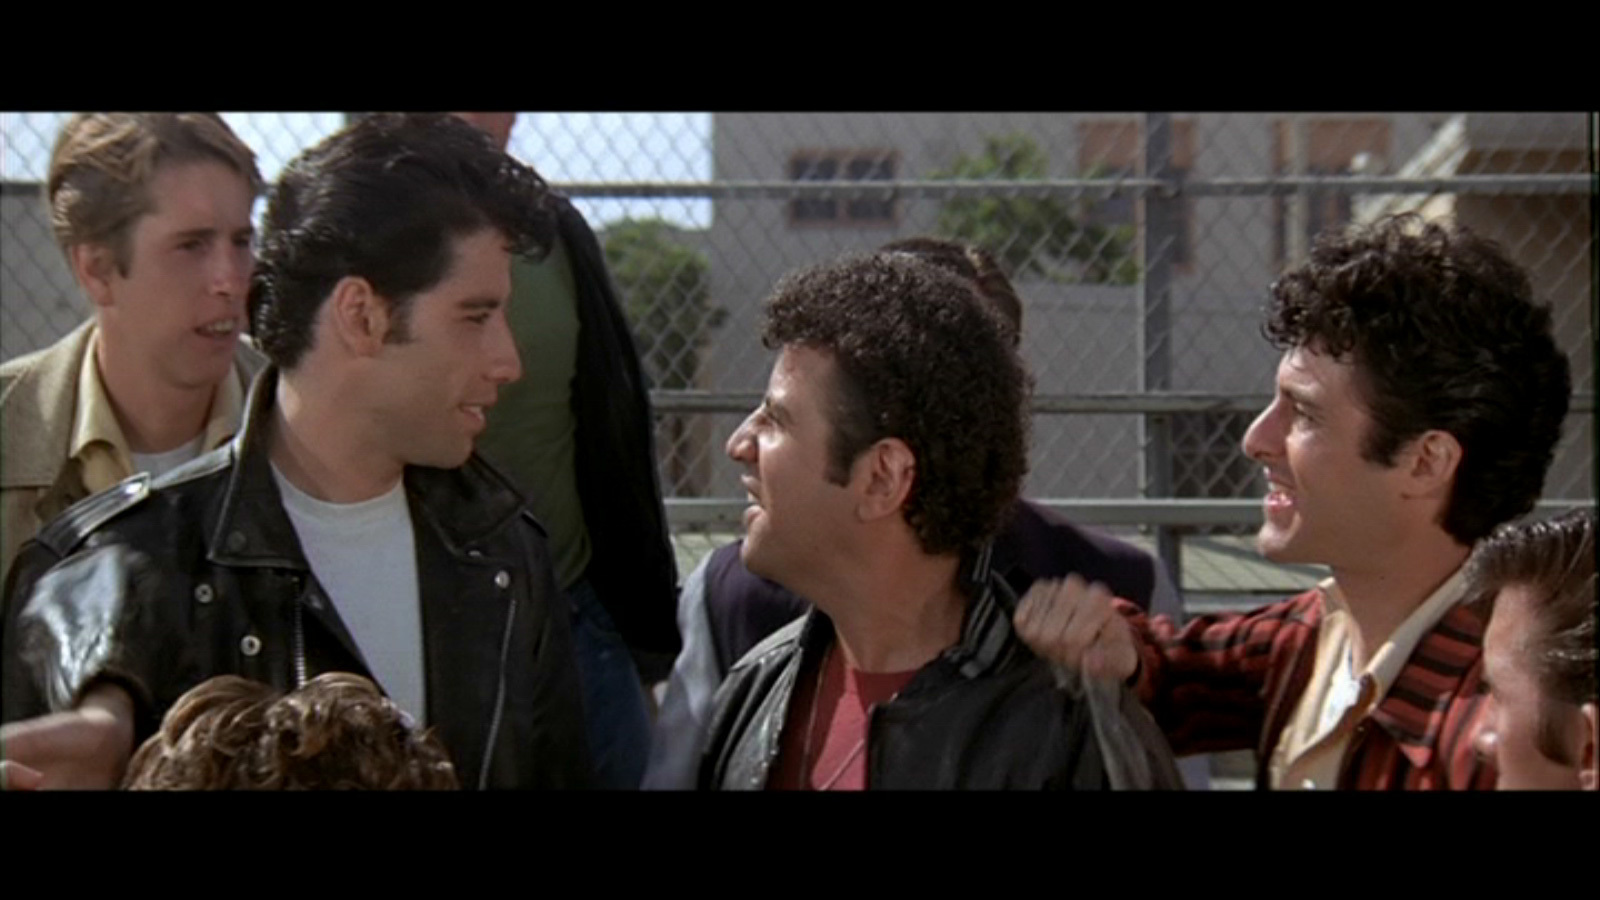 Grease Grease The Movie Image 2984451 Fanpop